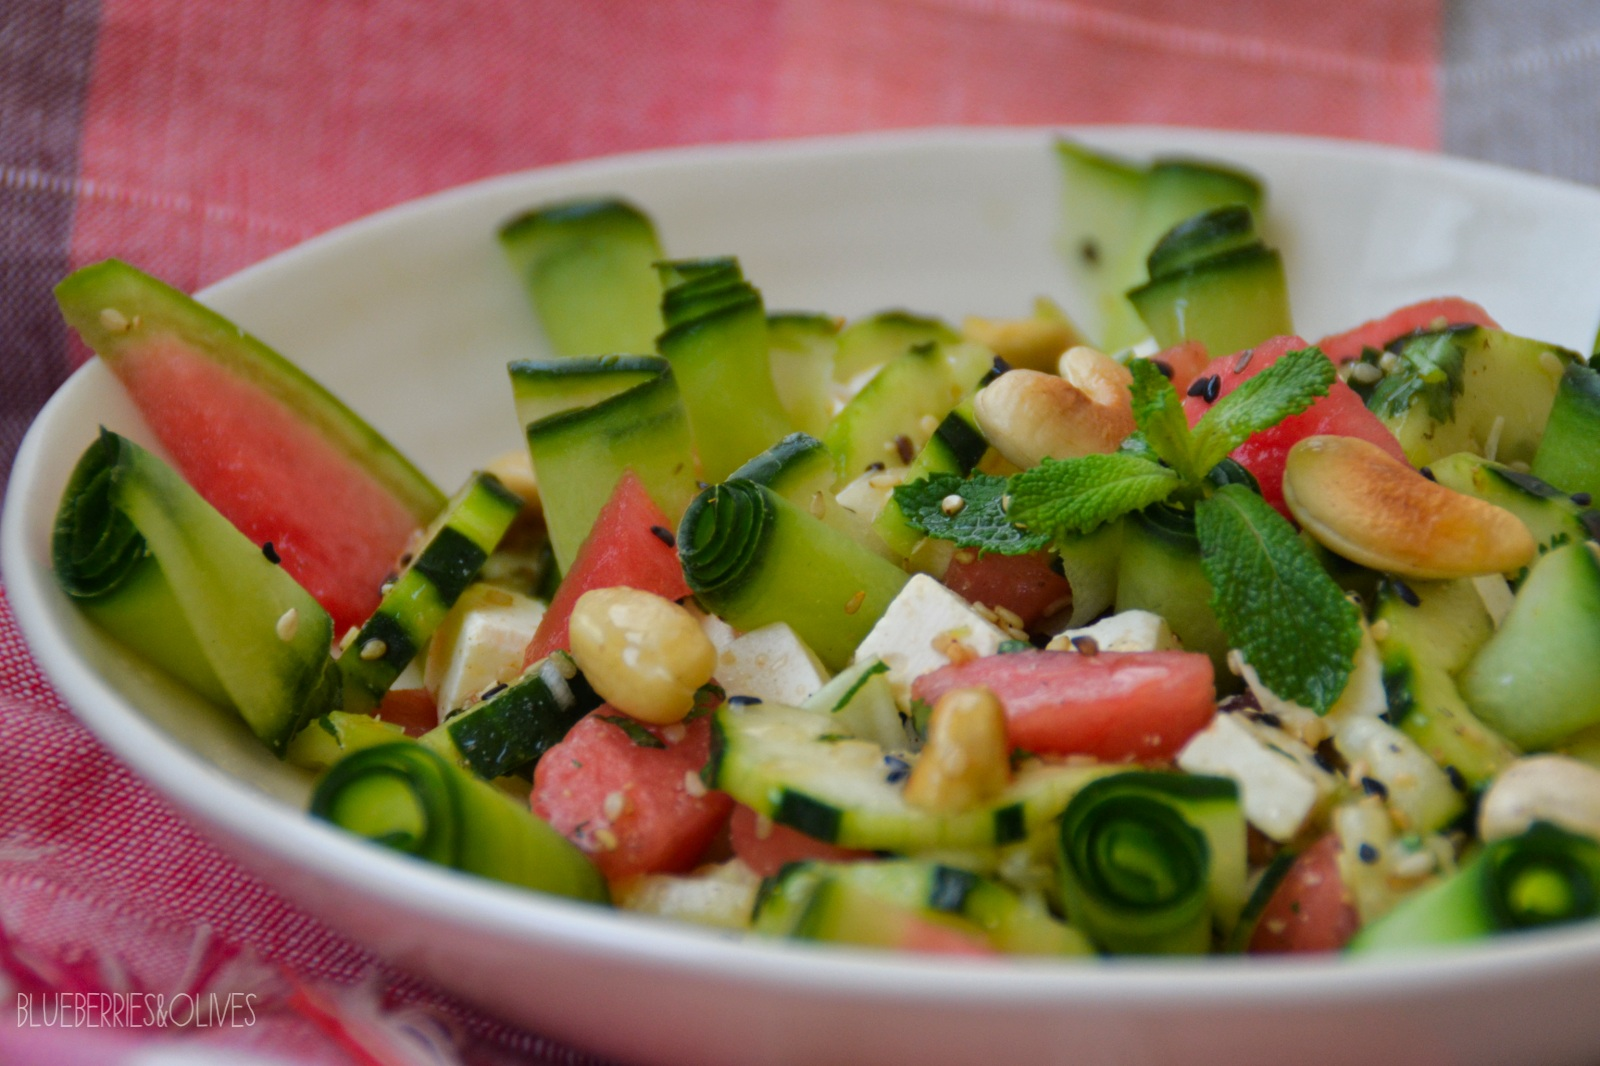 CUCUMBER AND WATERMELON SALAD WITH ASIAN DRESSING